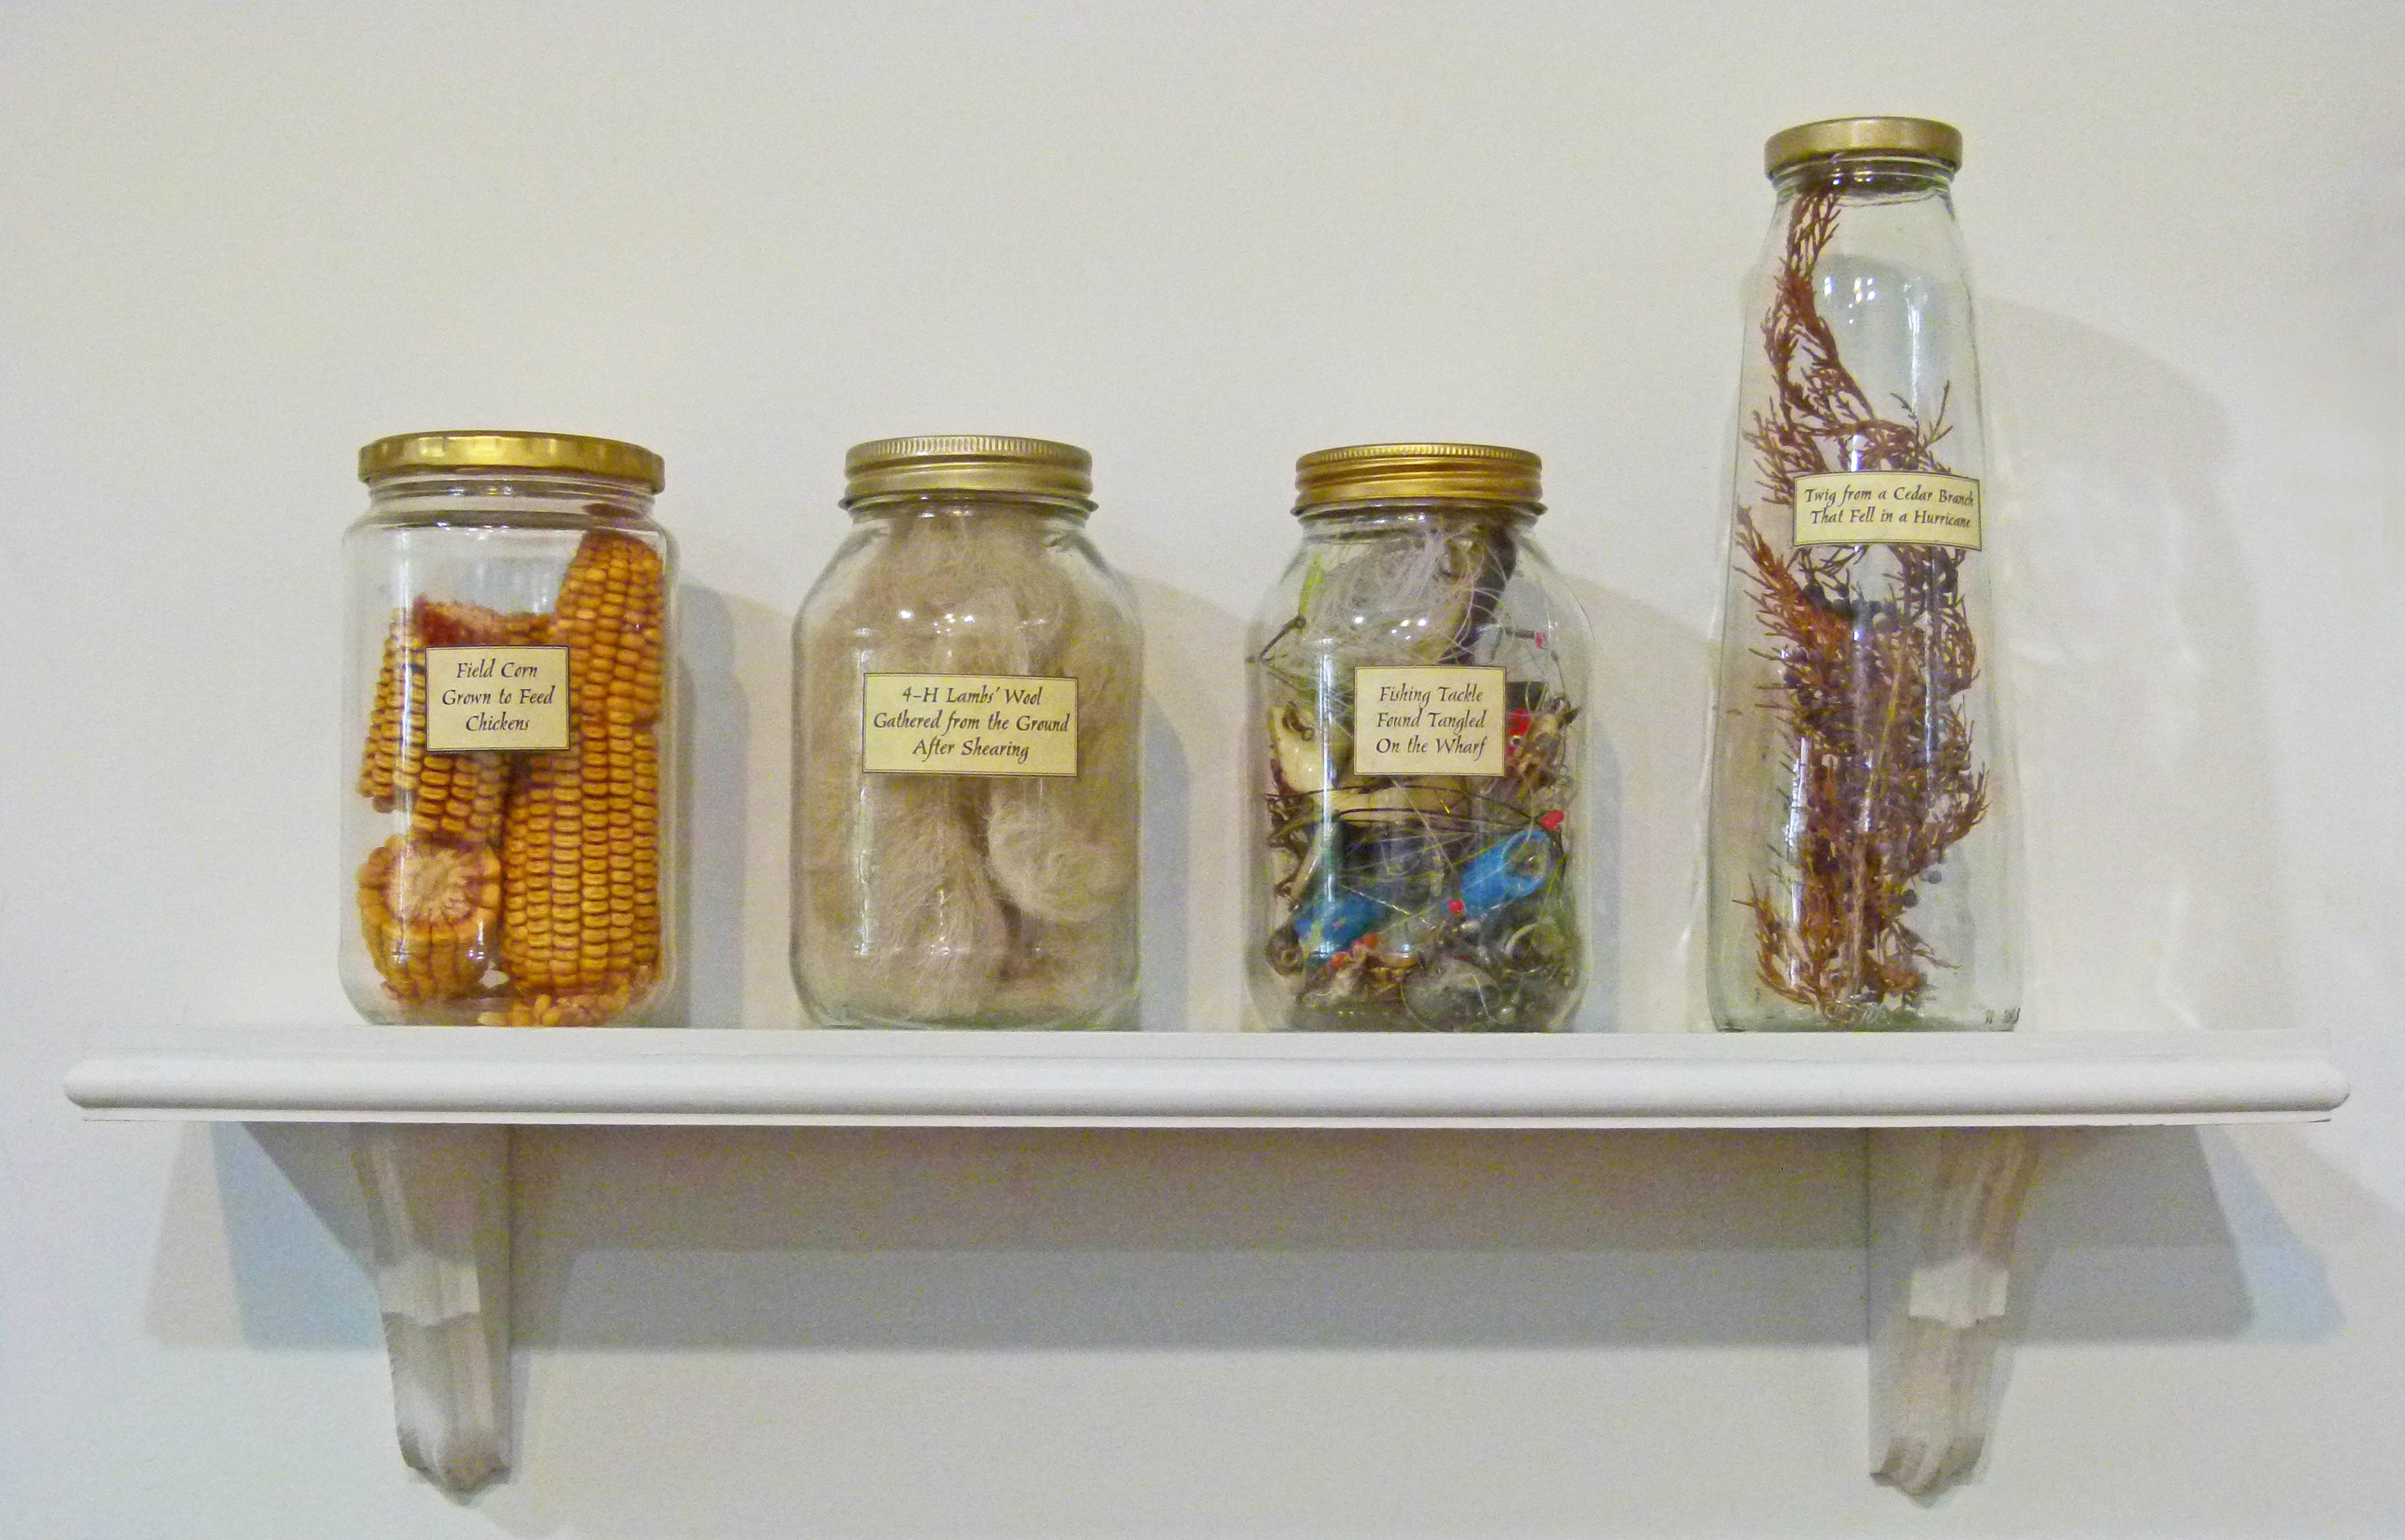 Ongoing work featuring found materials preserved in labeled jars